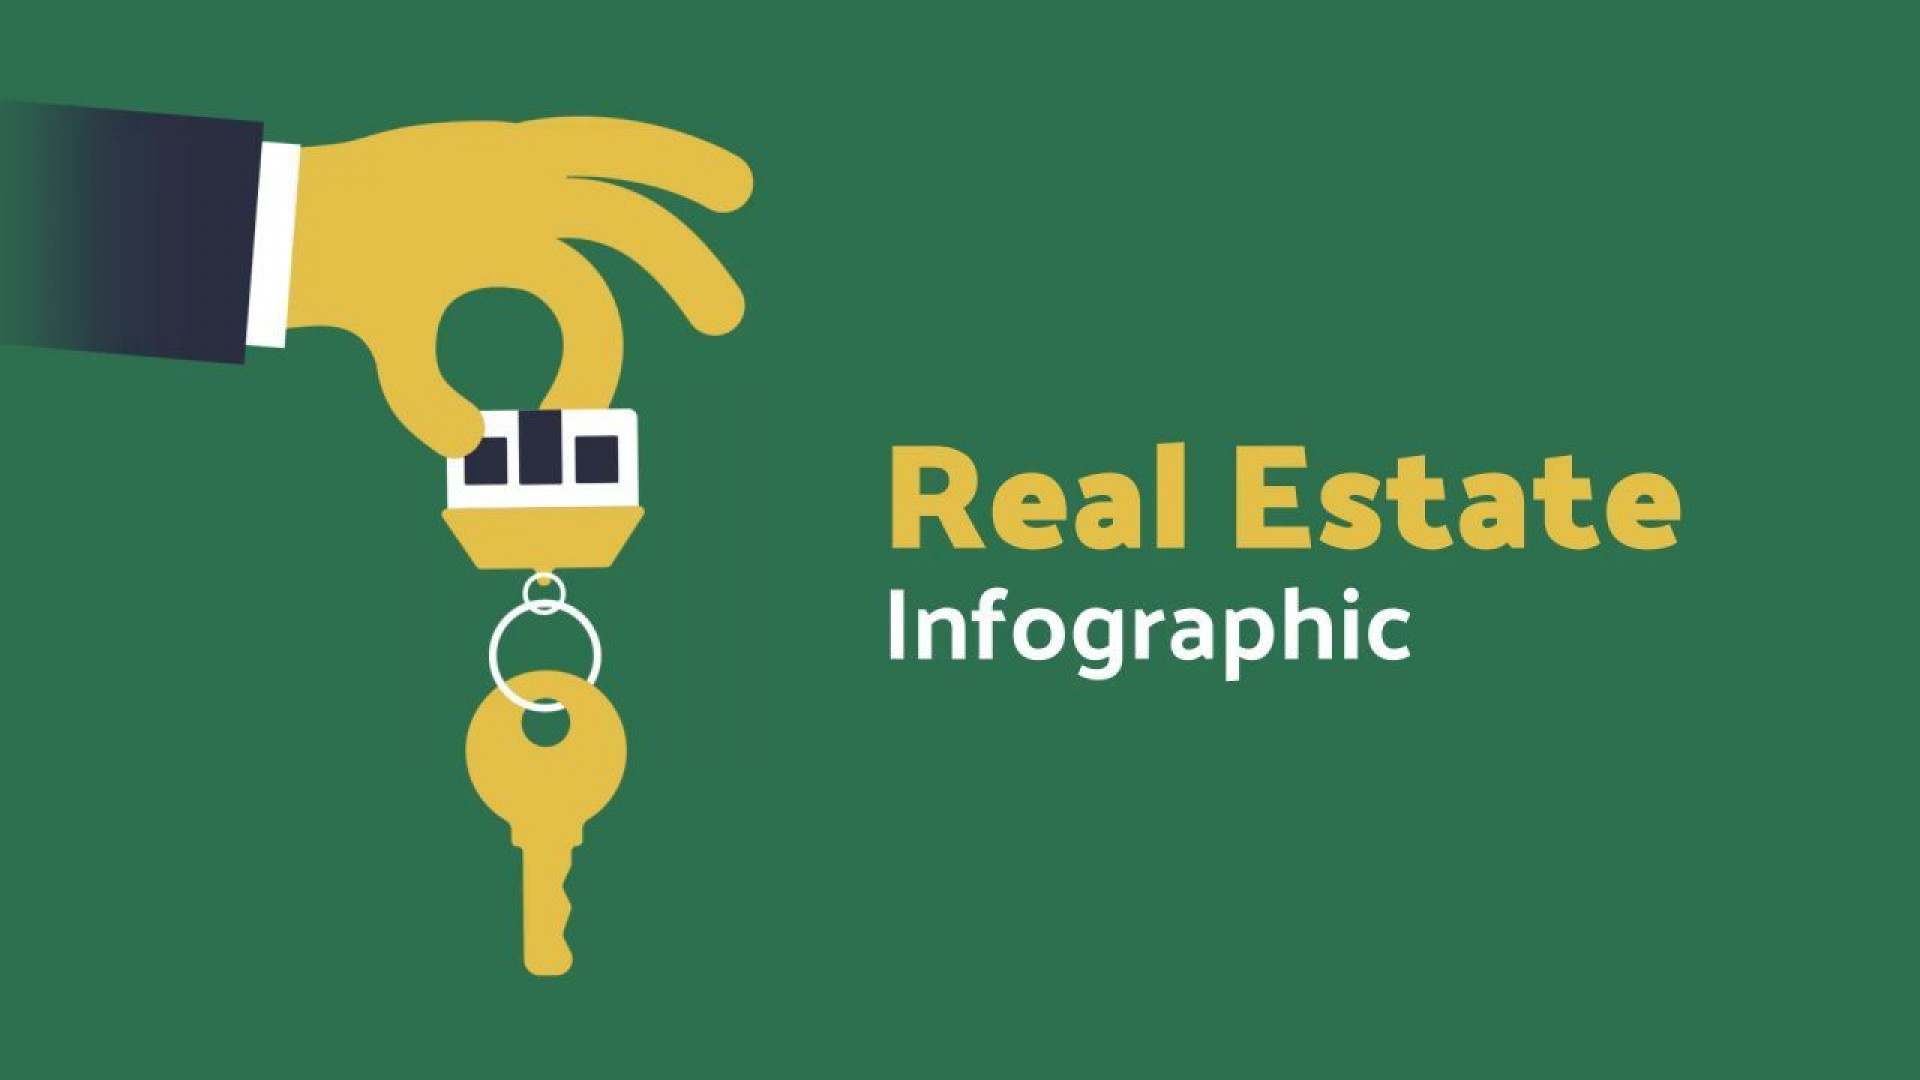 005 Remarkable Real Estate Marketing Video Template Idea  Templates1920